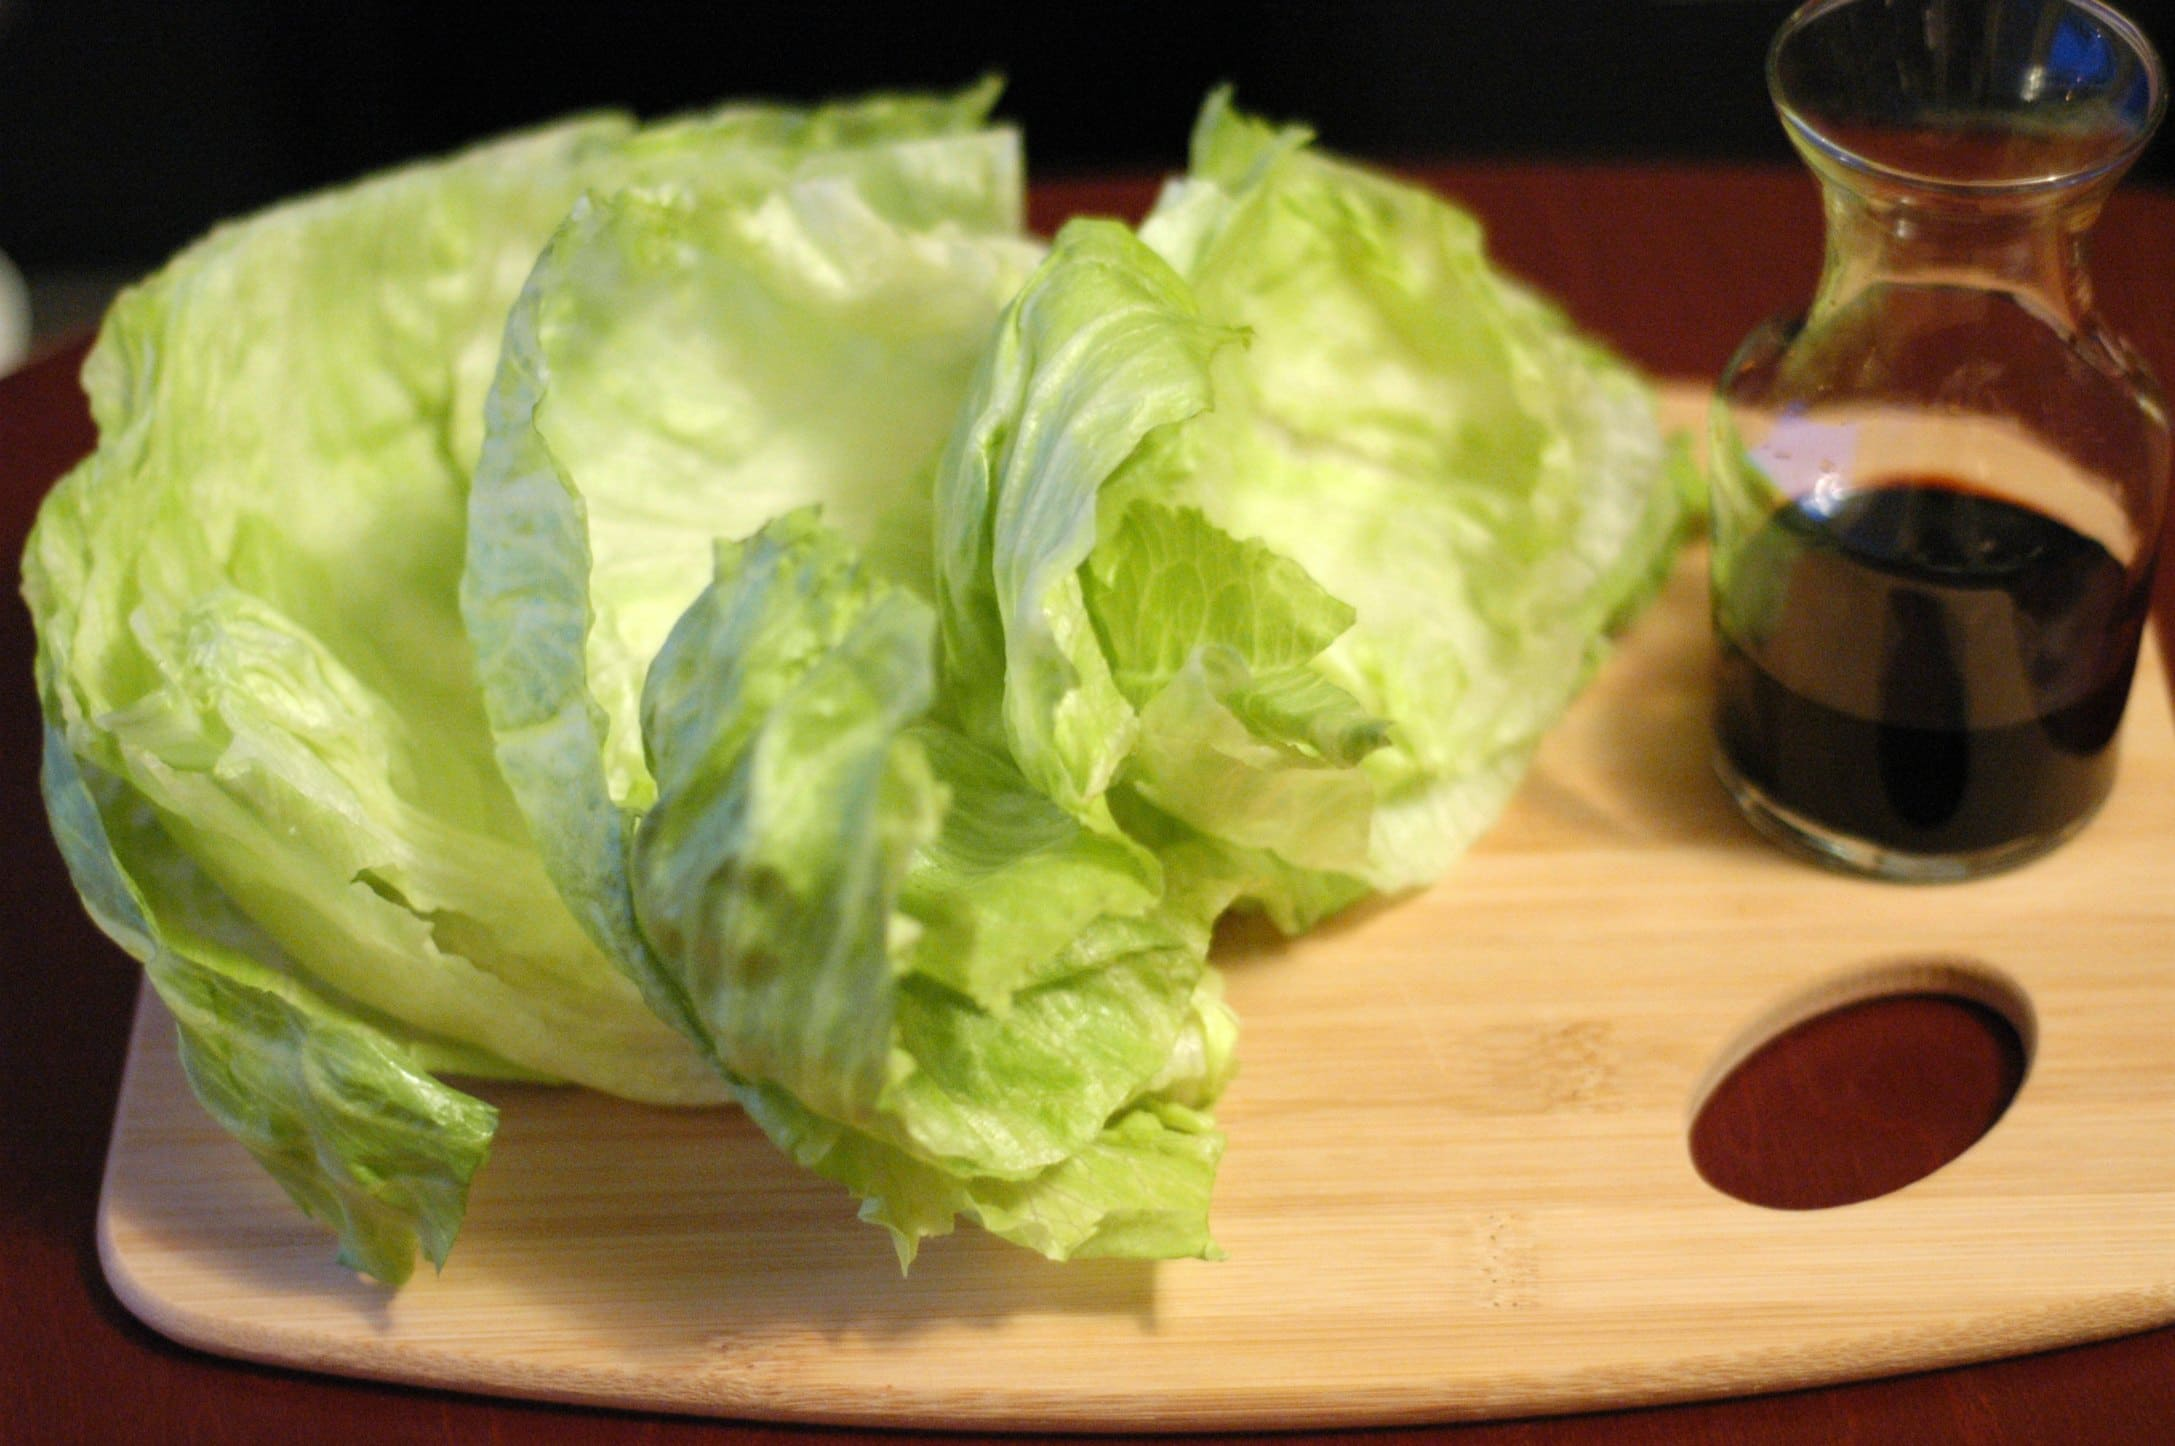 Head of lettuce on cutting board with cruet of soy sauce